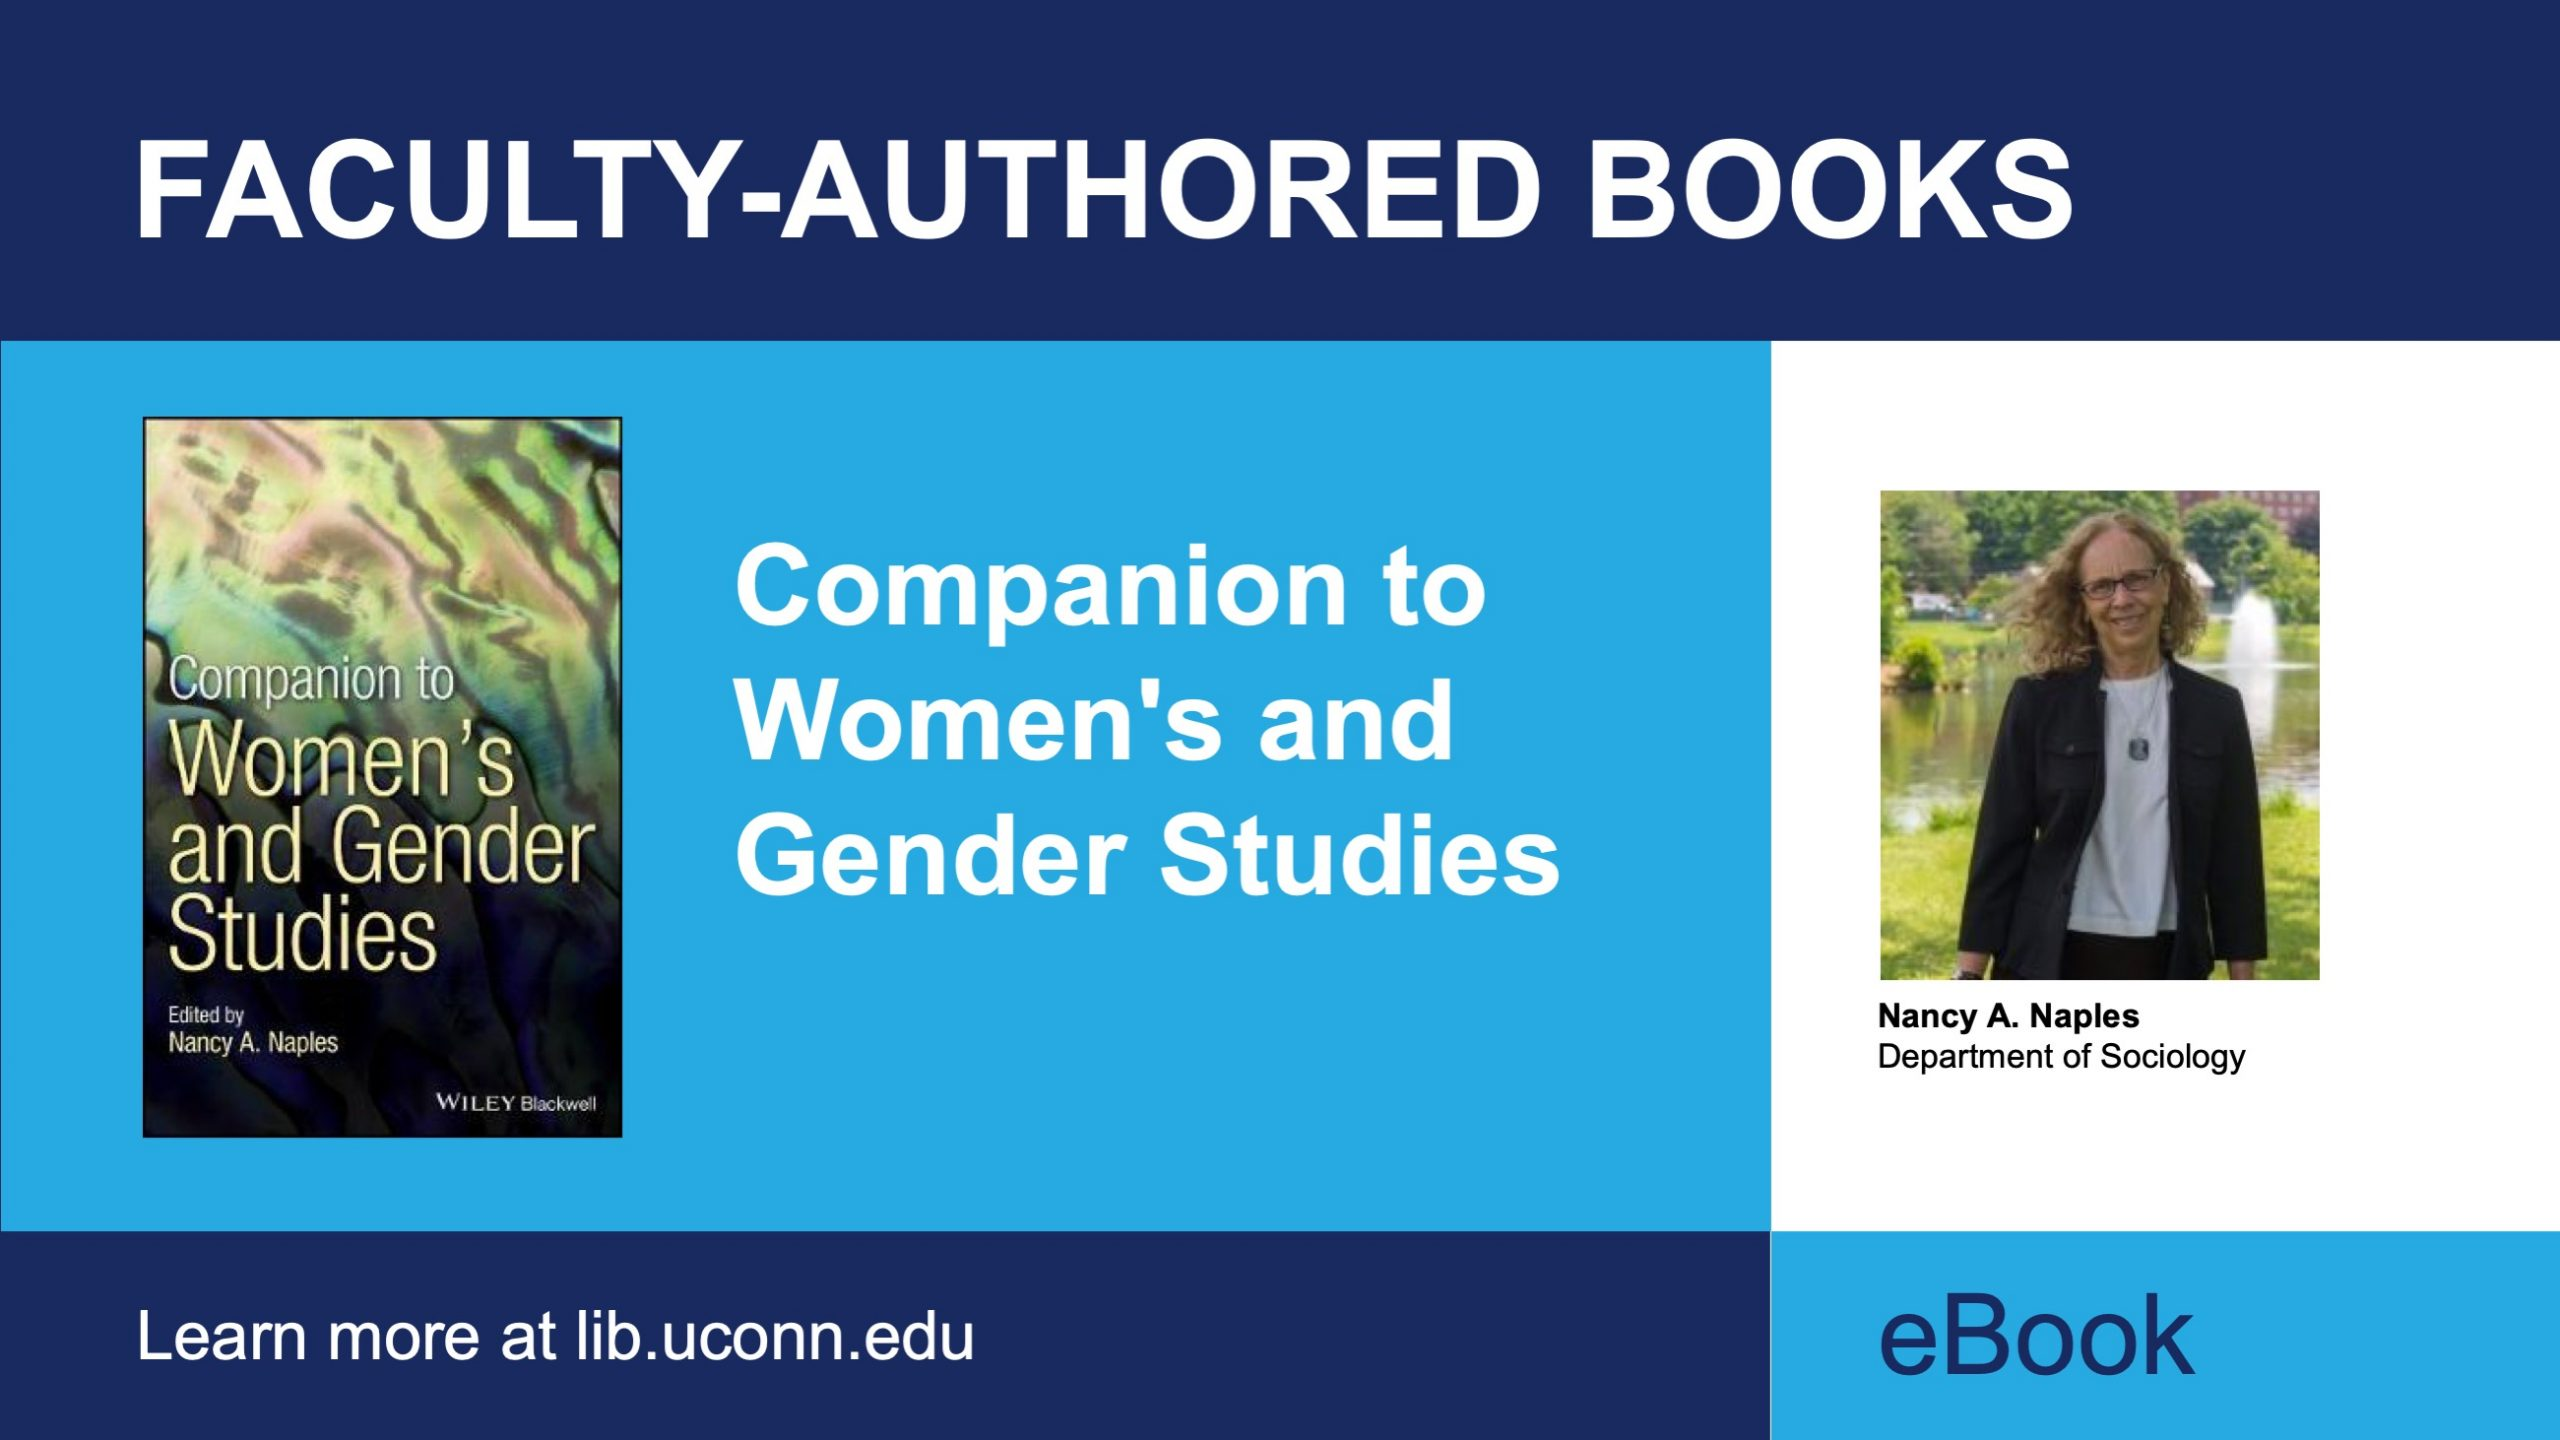 Faculty-Authored Books. Companion to Women's and Gender Studies. Nancy A. Naples, Department of Sociology. eBook. Learn more at lib.uconn.edu